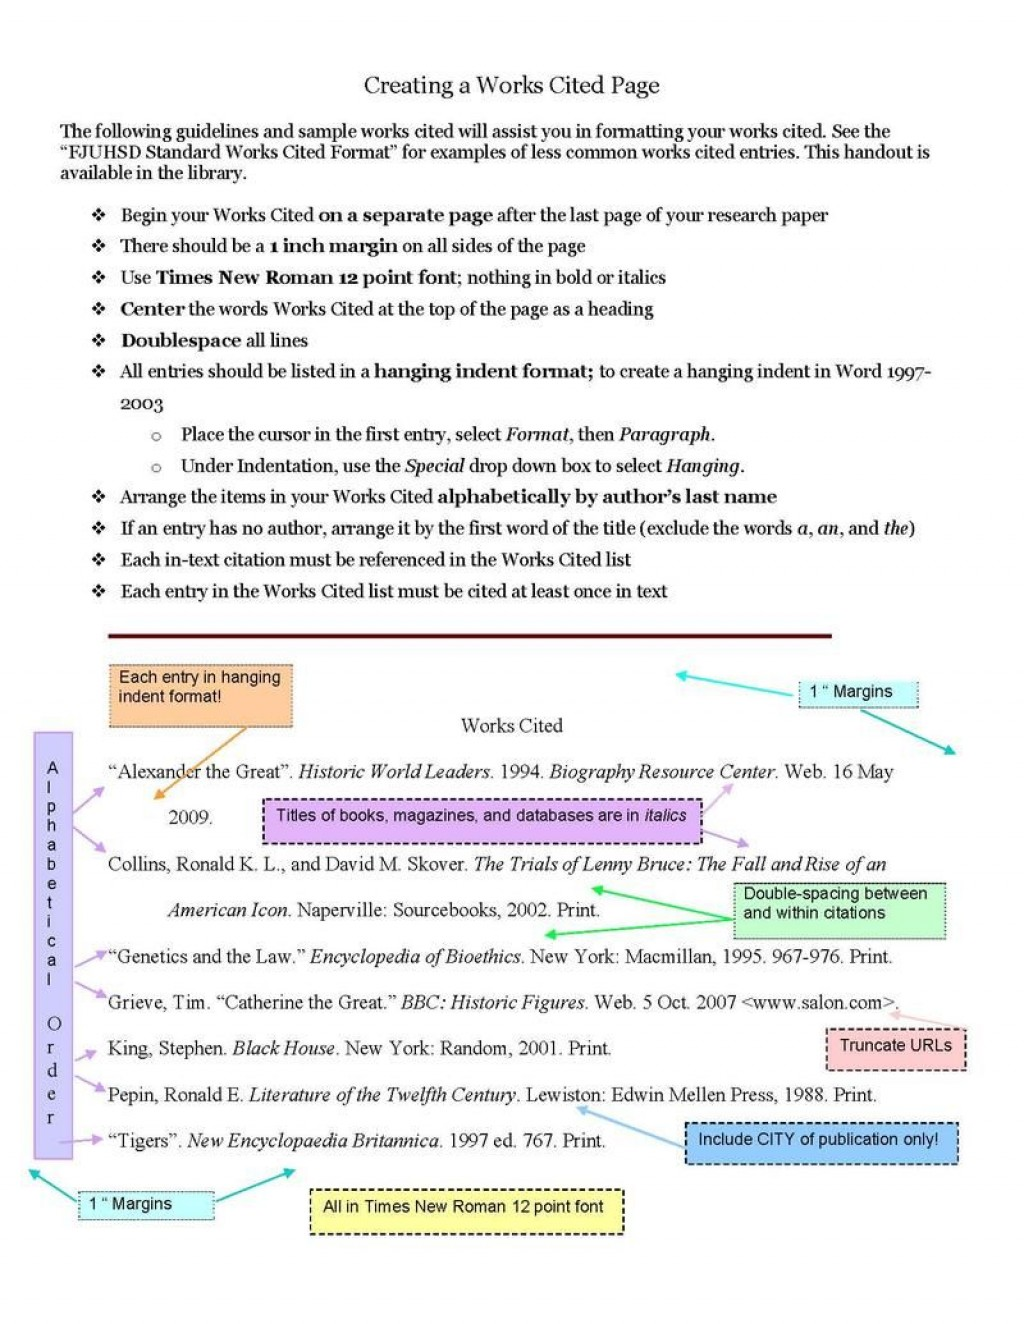 008 Cited Page For Research Paper Remarkable Sample Works How To Do Work Large